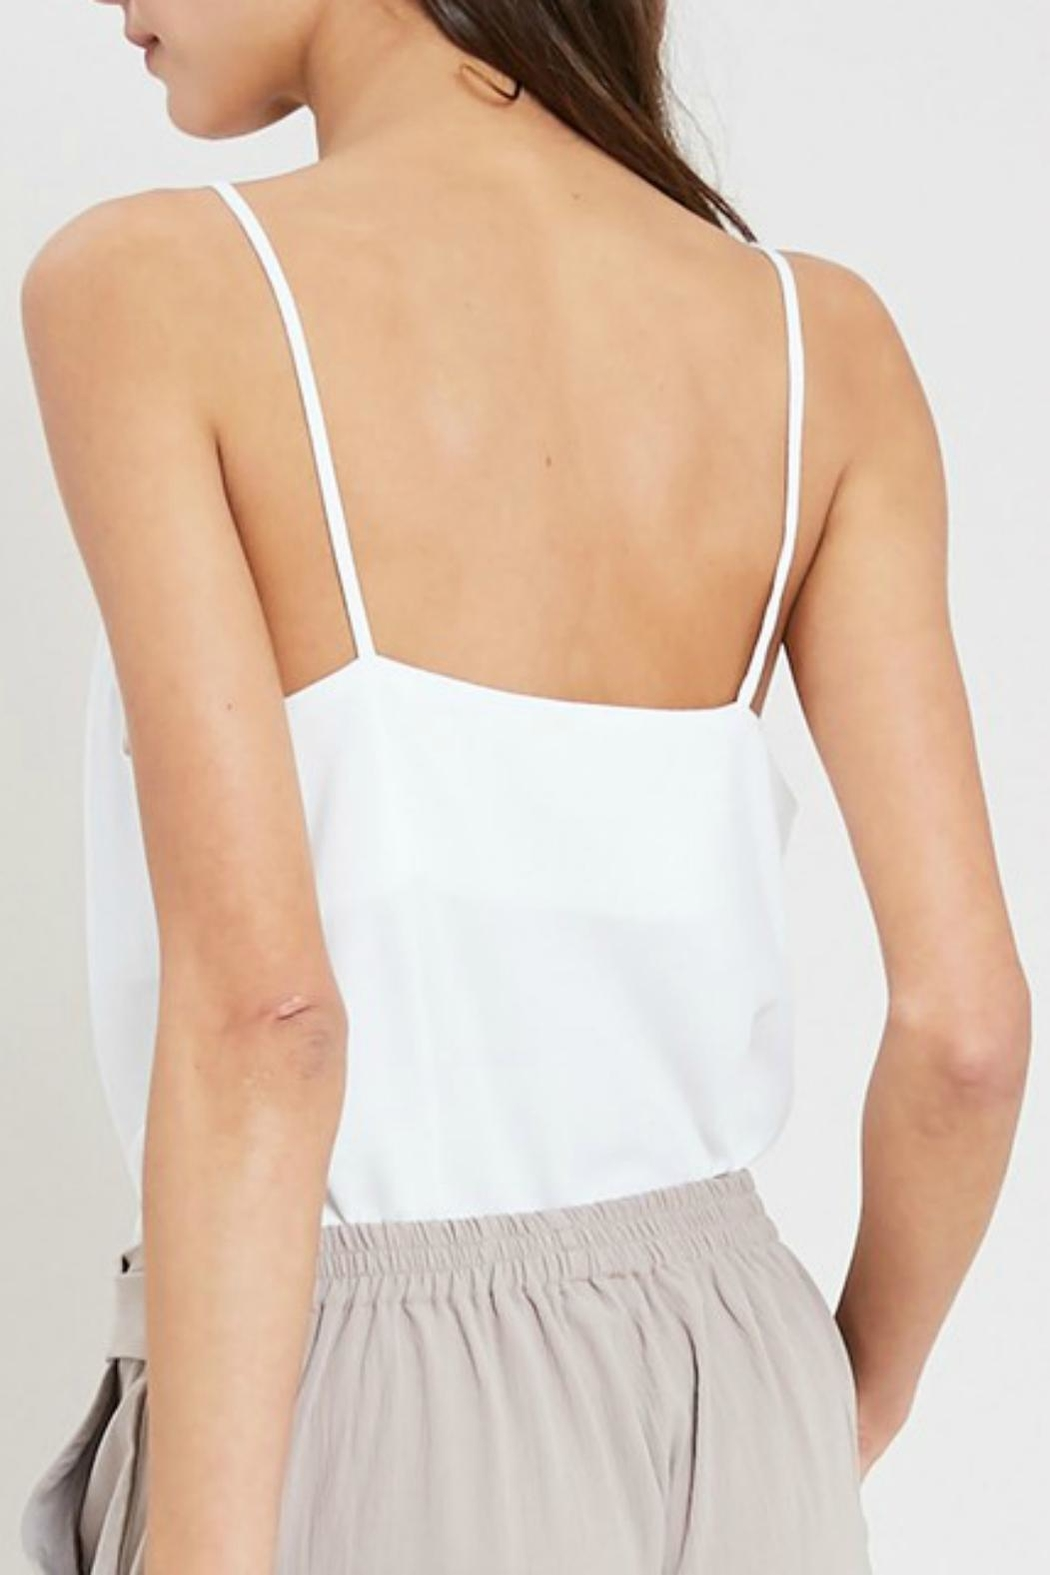 Pretty Little Things Cowlneck Tank Top - Front Full Image